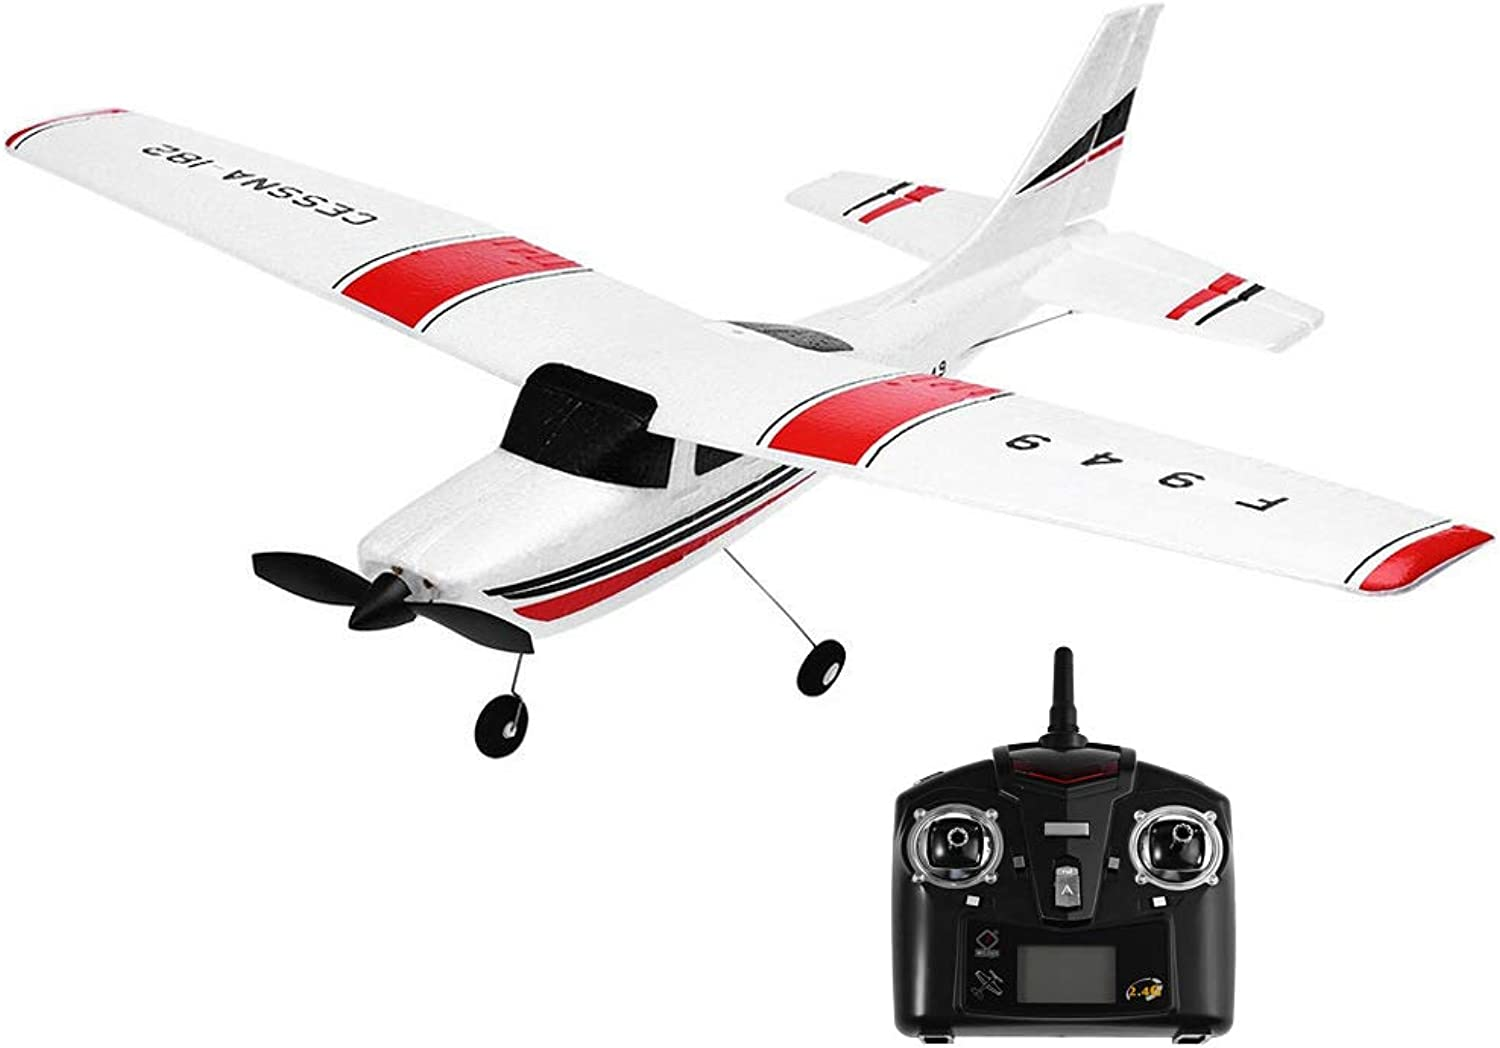 SLONG Remote Control Foam Aircraft Hand Throwing Fixed Wing Glider RC Airplane Remote Control Aircraft Toy USB Charging High Simulation